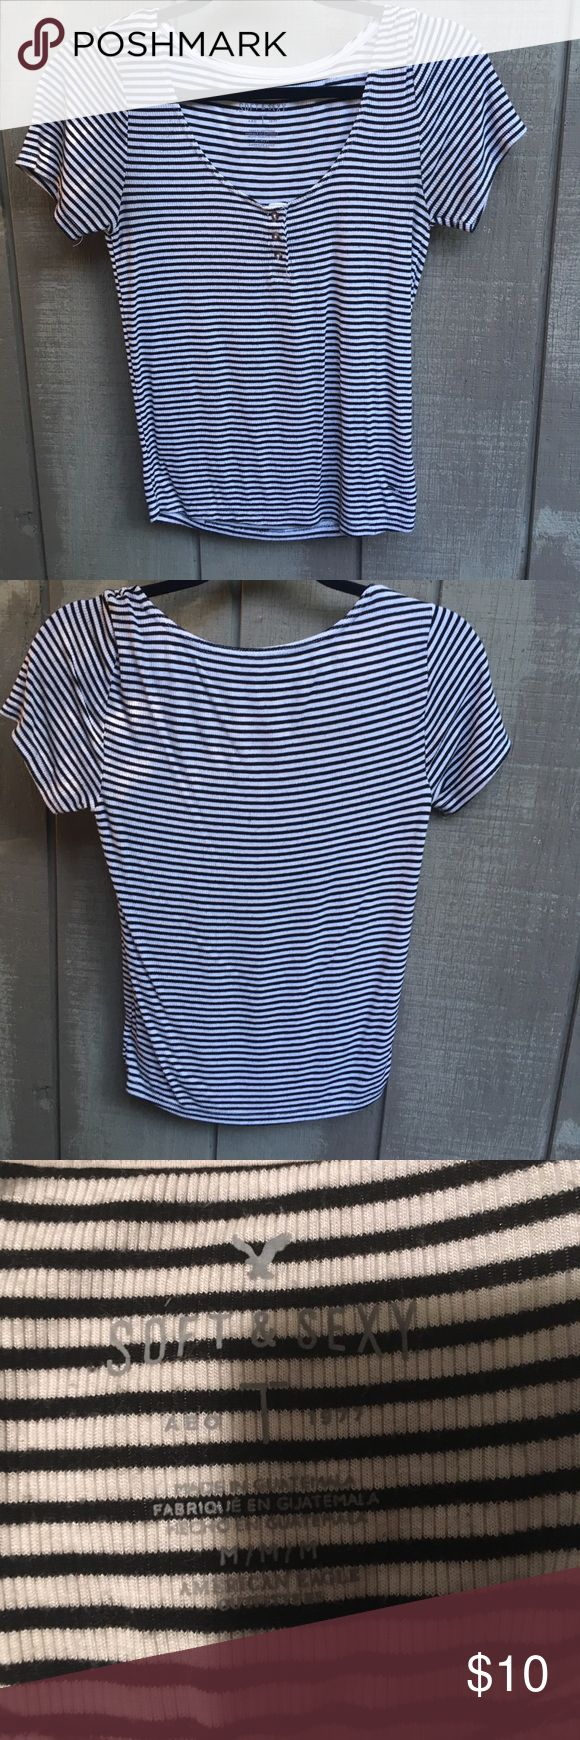 AE T Shirt Super cute soft & sexy American Eagle t shirt, black and white striped, 3 button front, size medium but can fit a small as well, small amount of pilling on the front but not noticeable American Eagle Outfitters Tops Tees - Short Sleeve